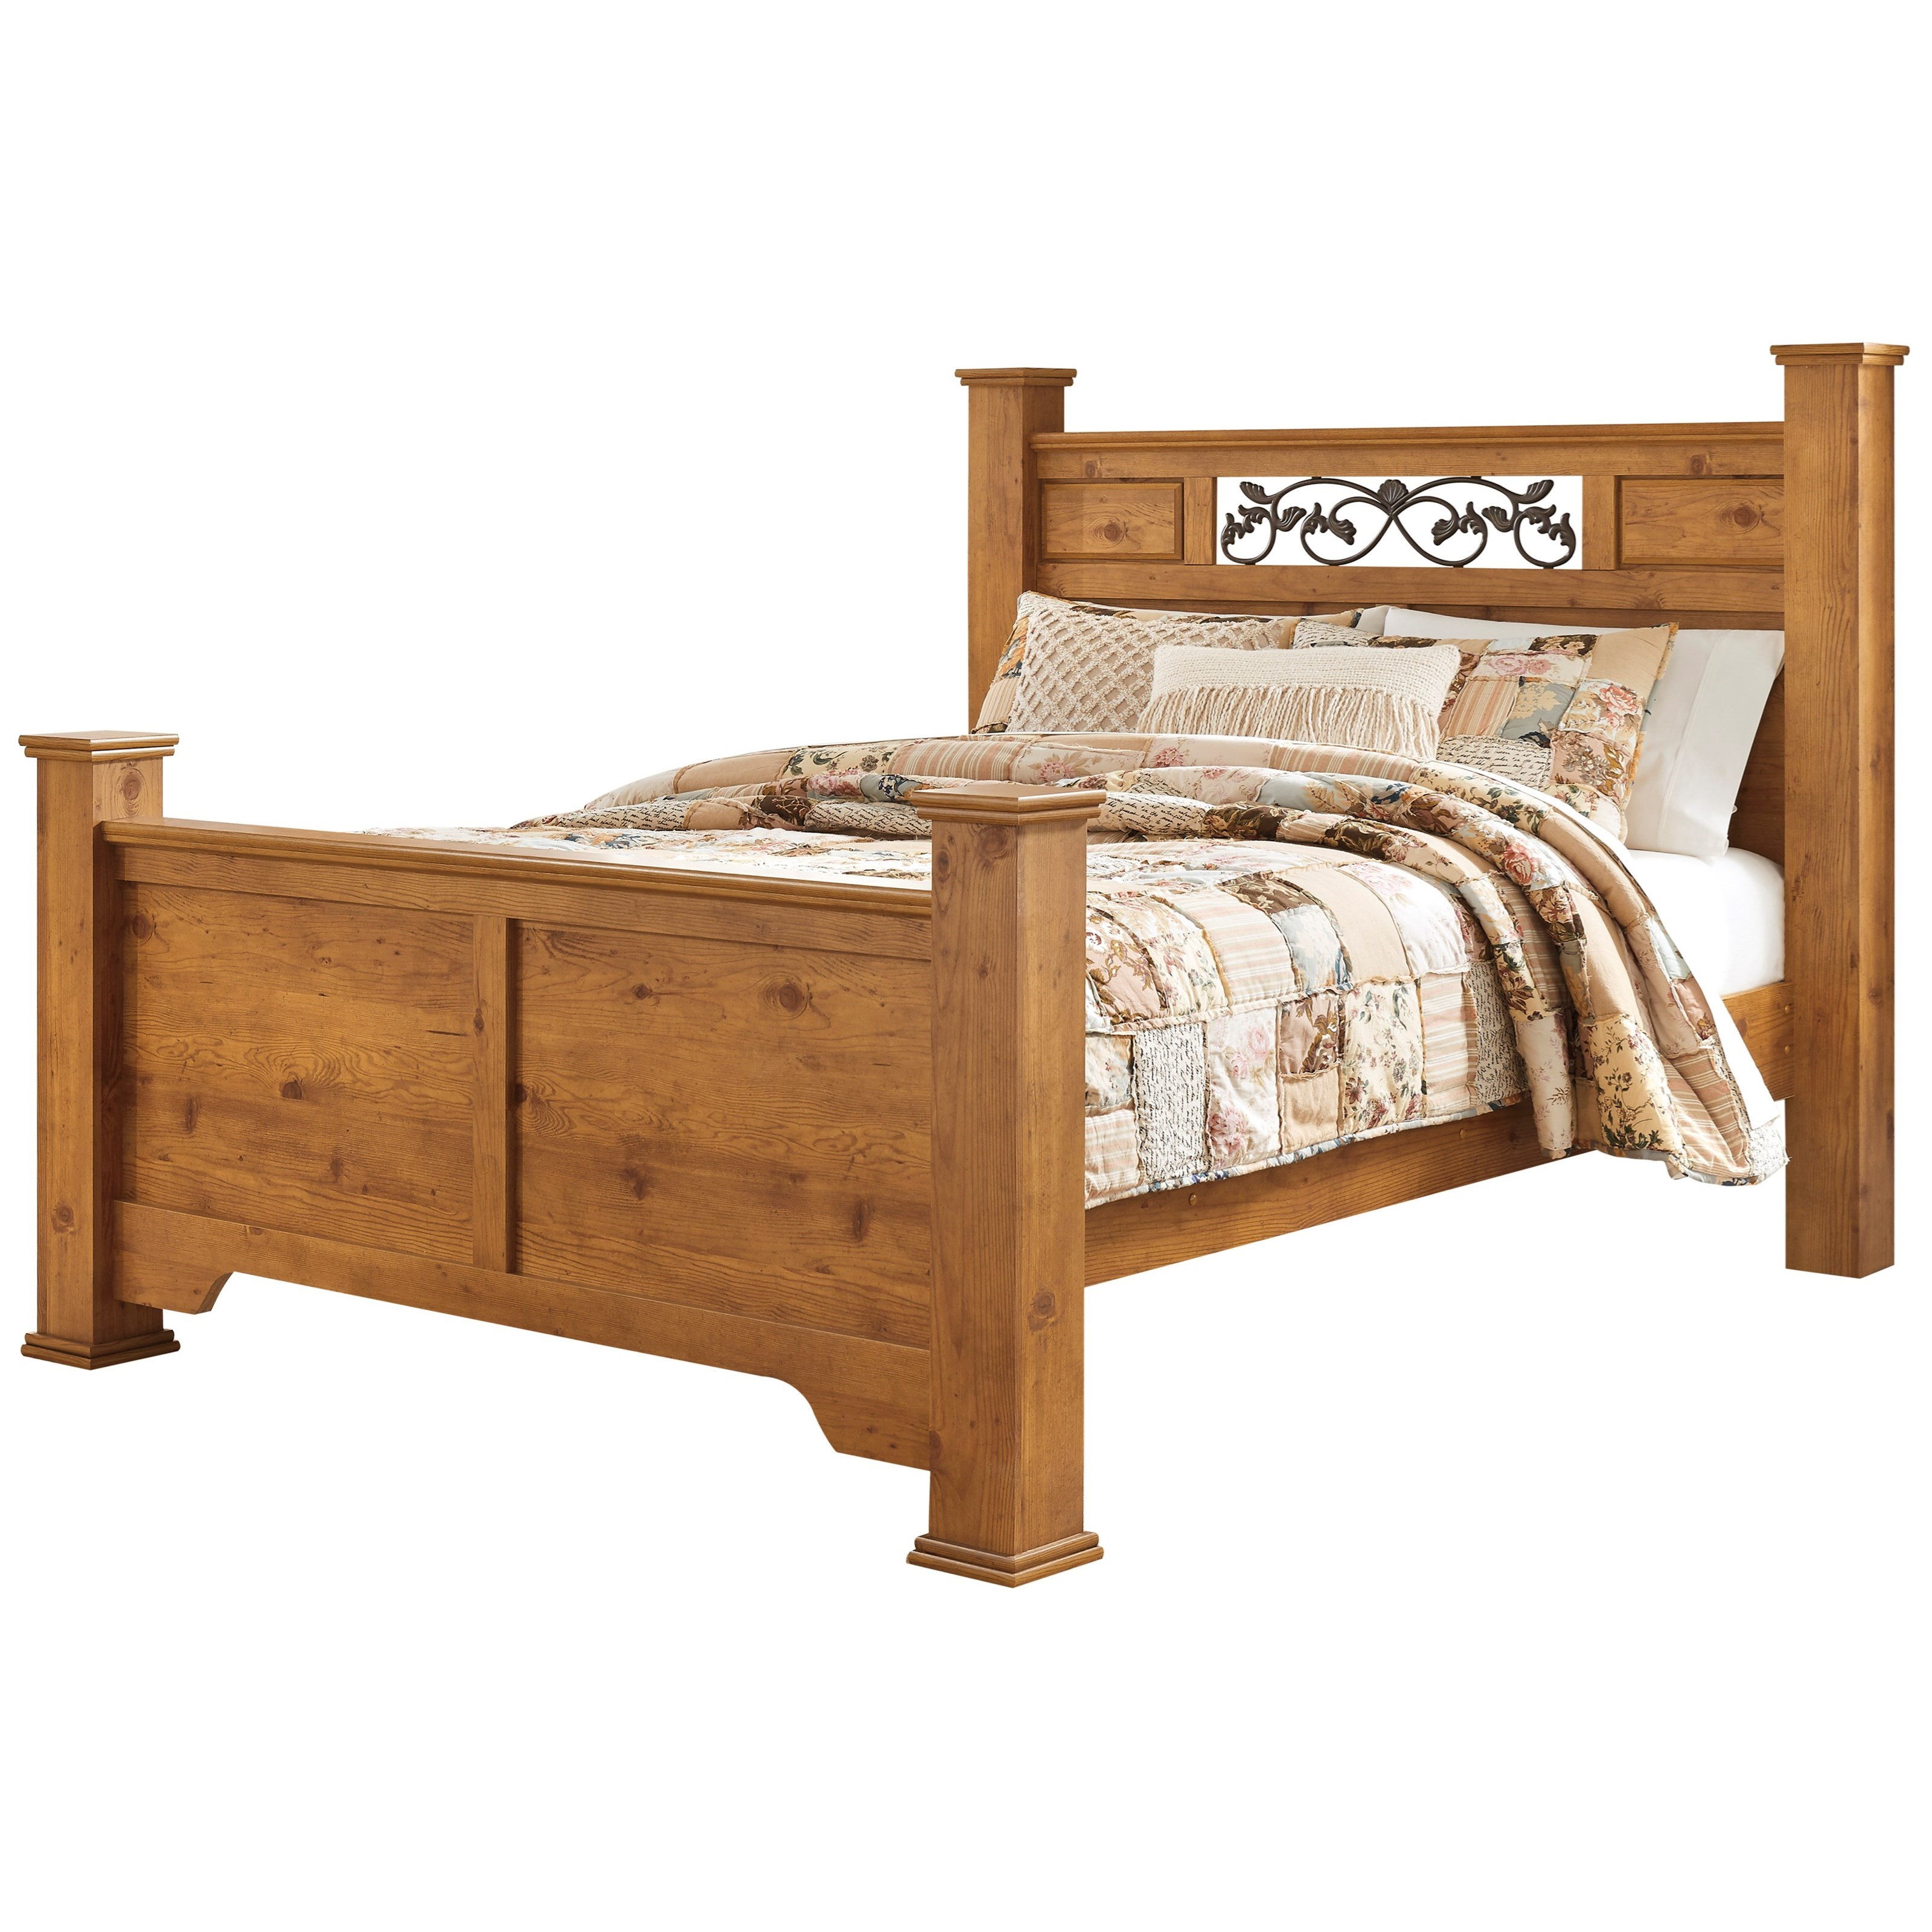 Signature Design By Ashley Bittersweet Queen Poster Bed With Scrolled Accents Knight Furniture